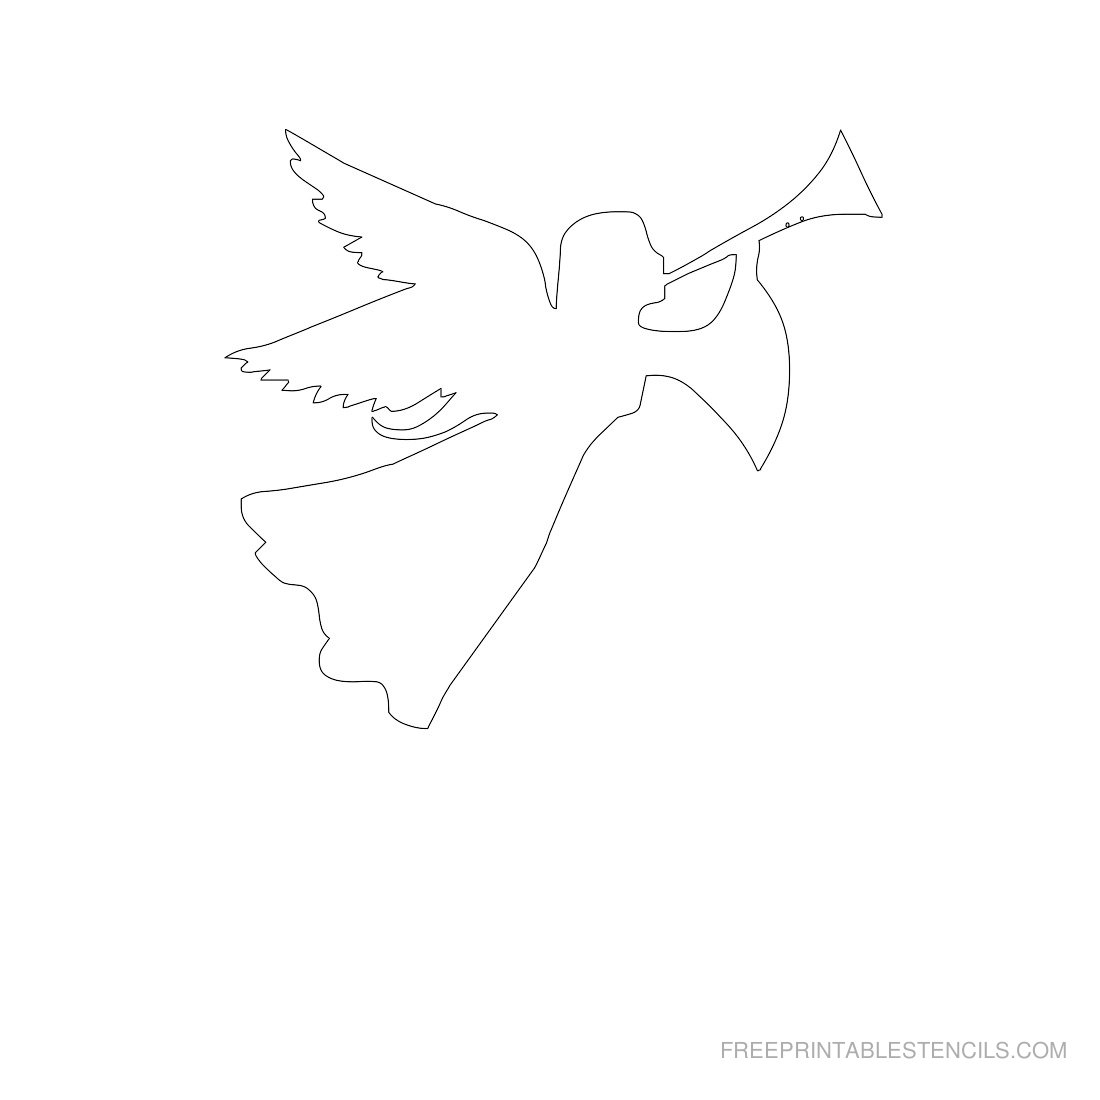 free printable angel stencils templates angels stencil crayola magnetic double easel coloring pages Angel Templates Printable Free